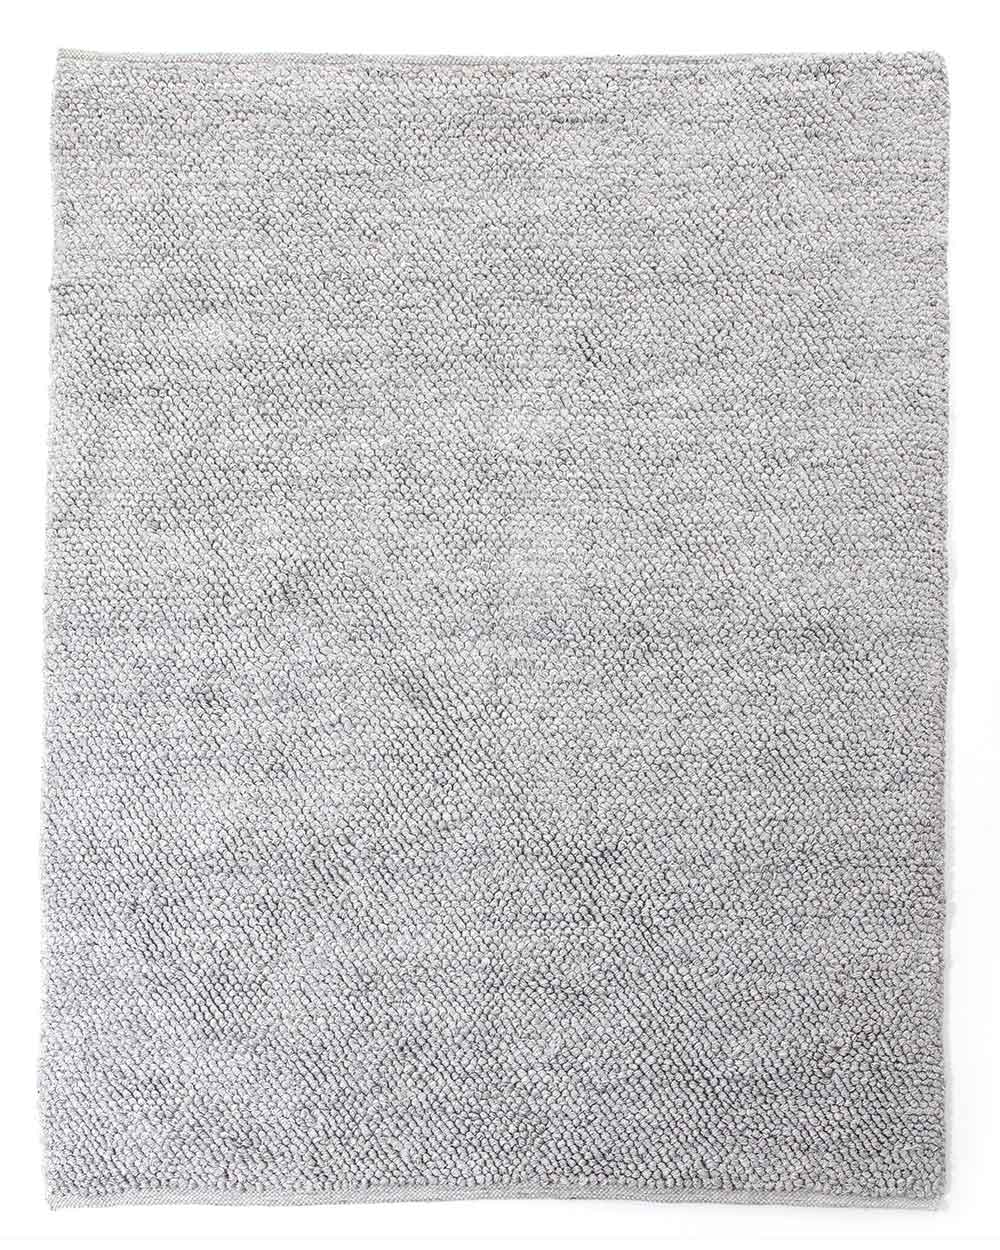 Billa light grey outdoor rug Four Hands product image